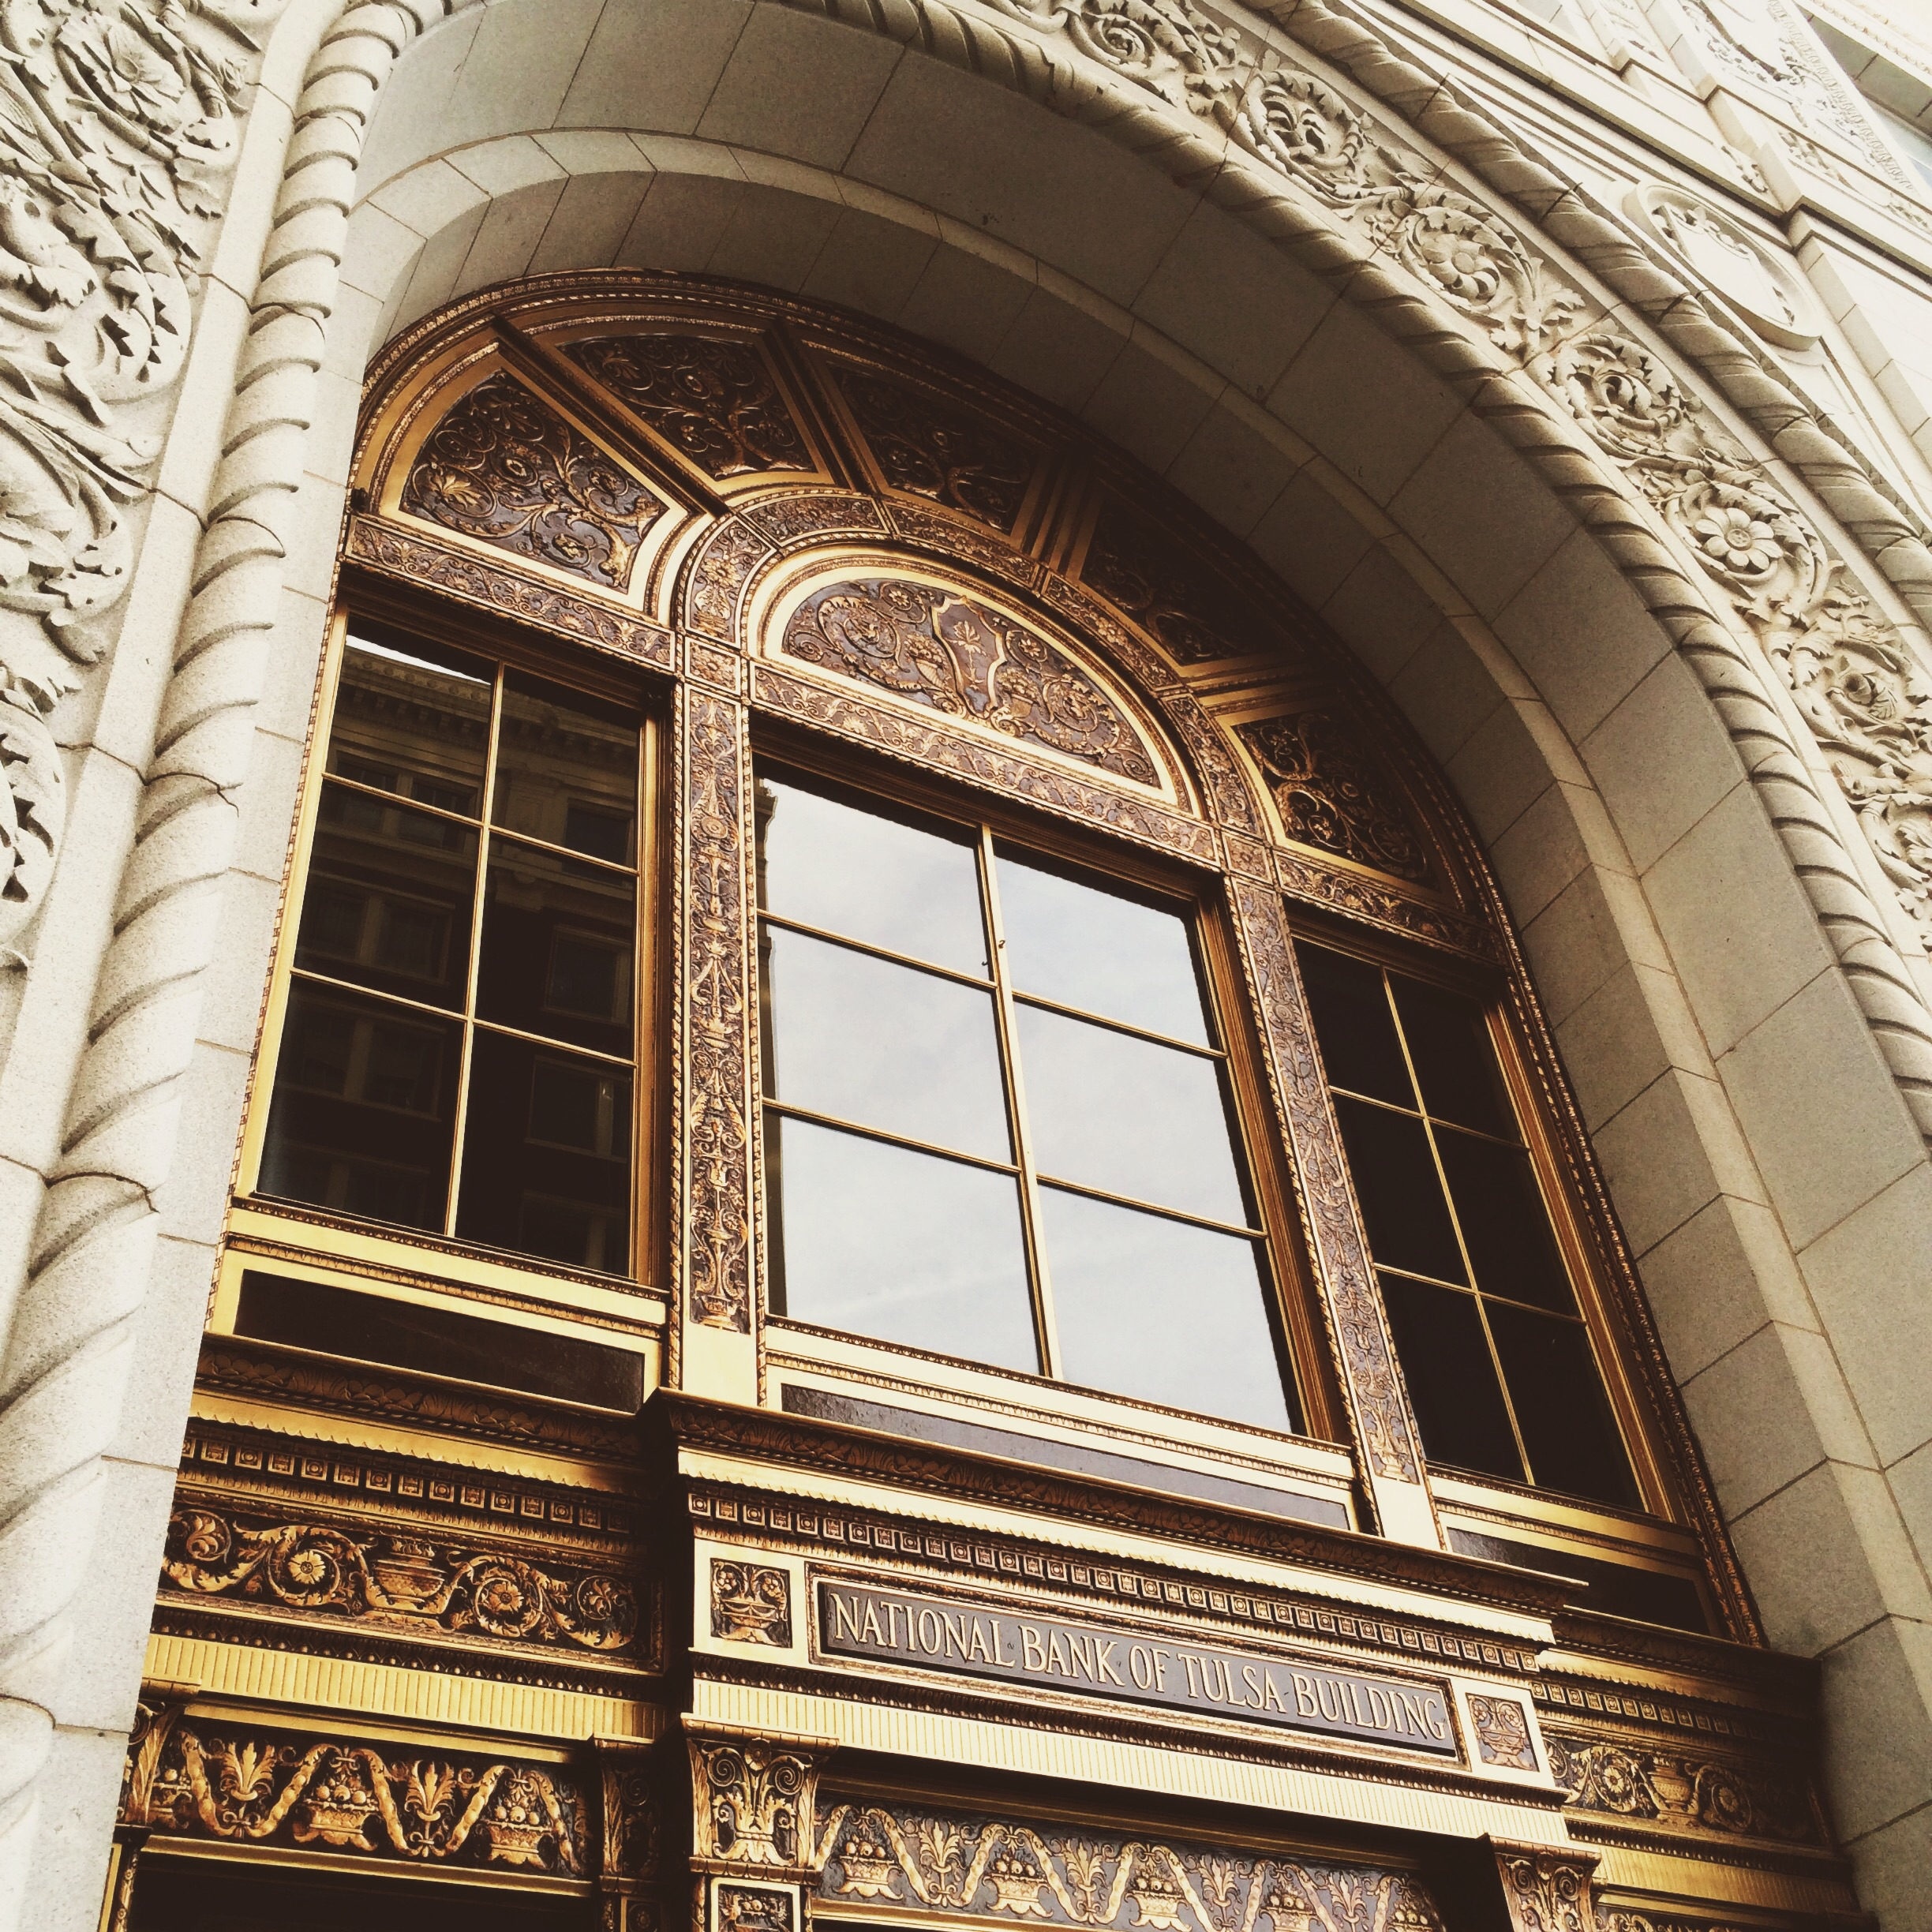 This was a super cool building that has been restored almost to it's origin. It is currently home to a Bank of Oklahoma Branch on it's ground floor so they said we couldn't take any images on the inside of the bank.